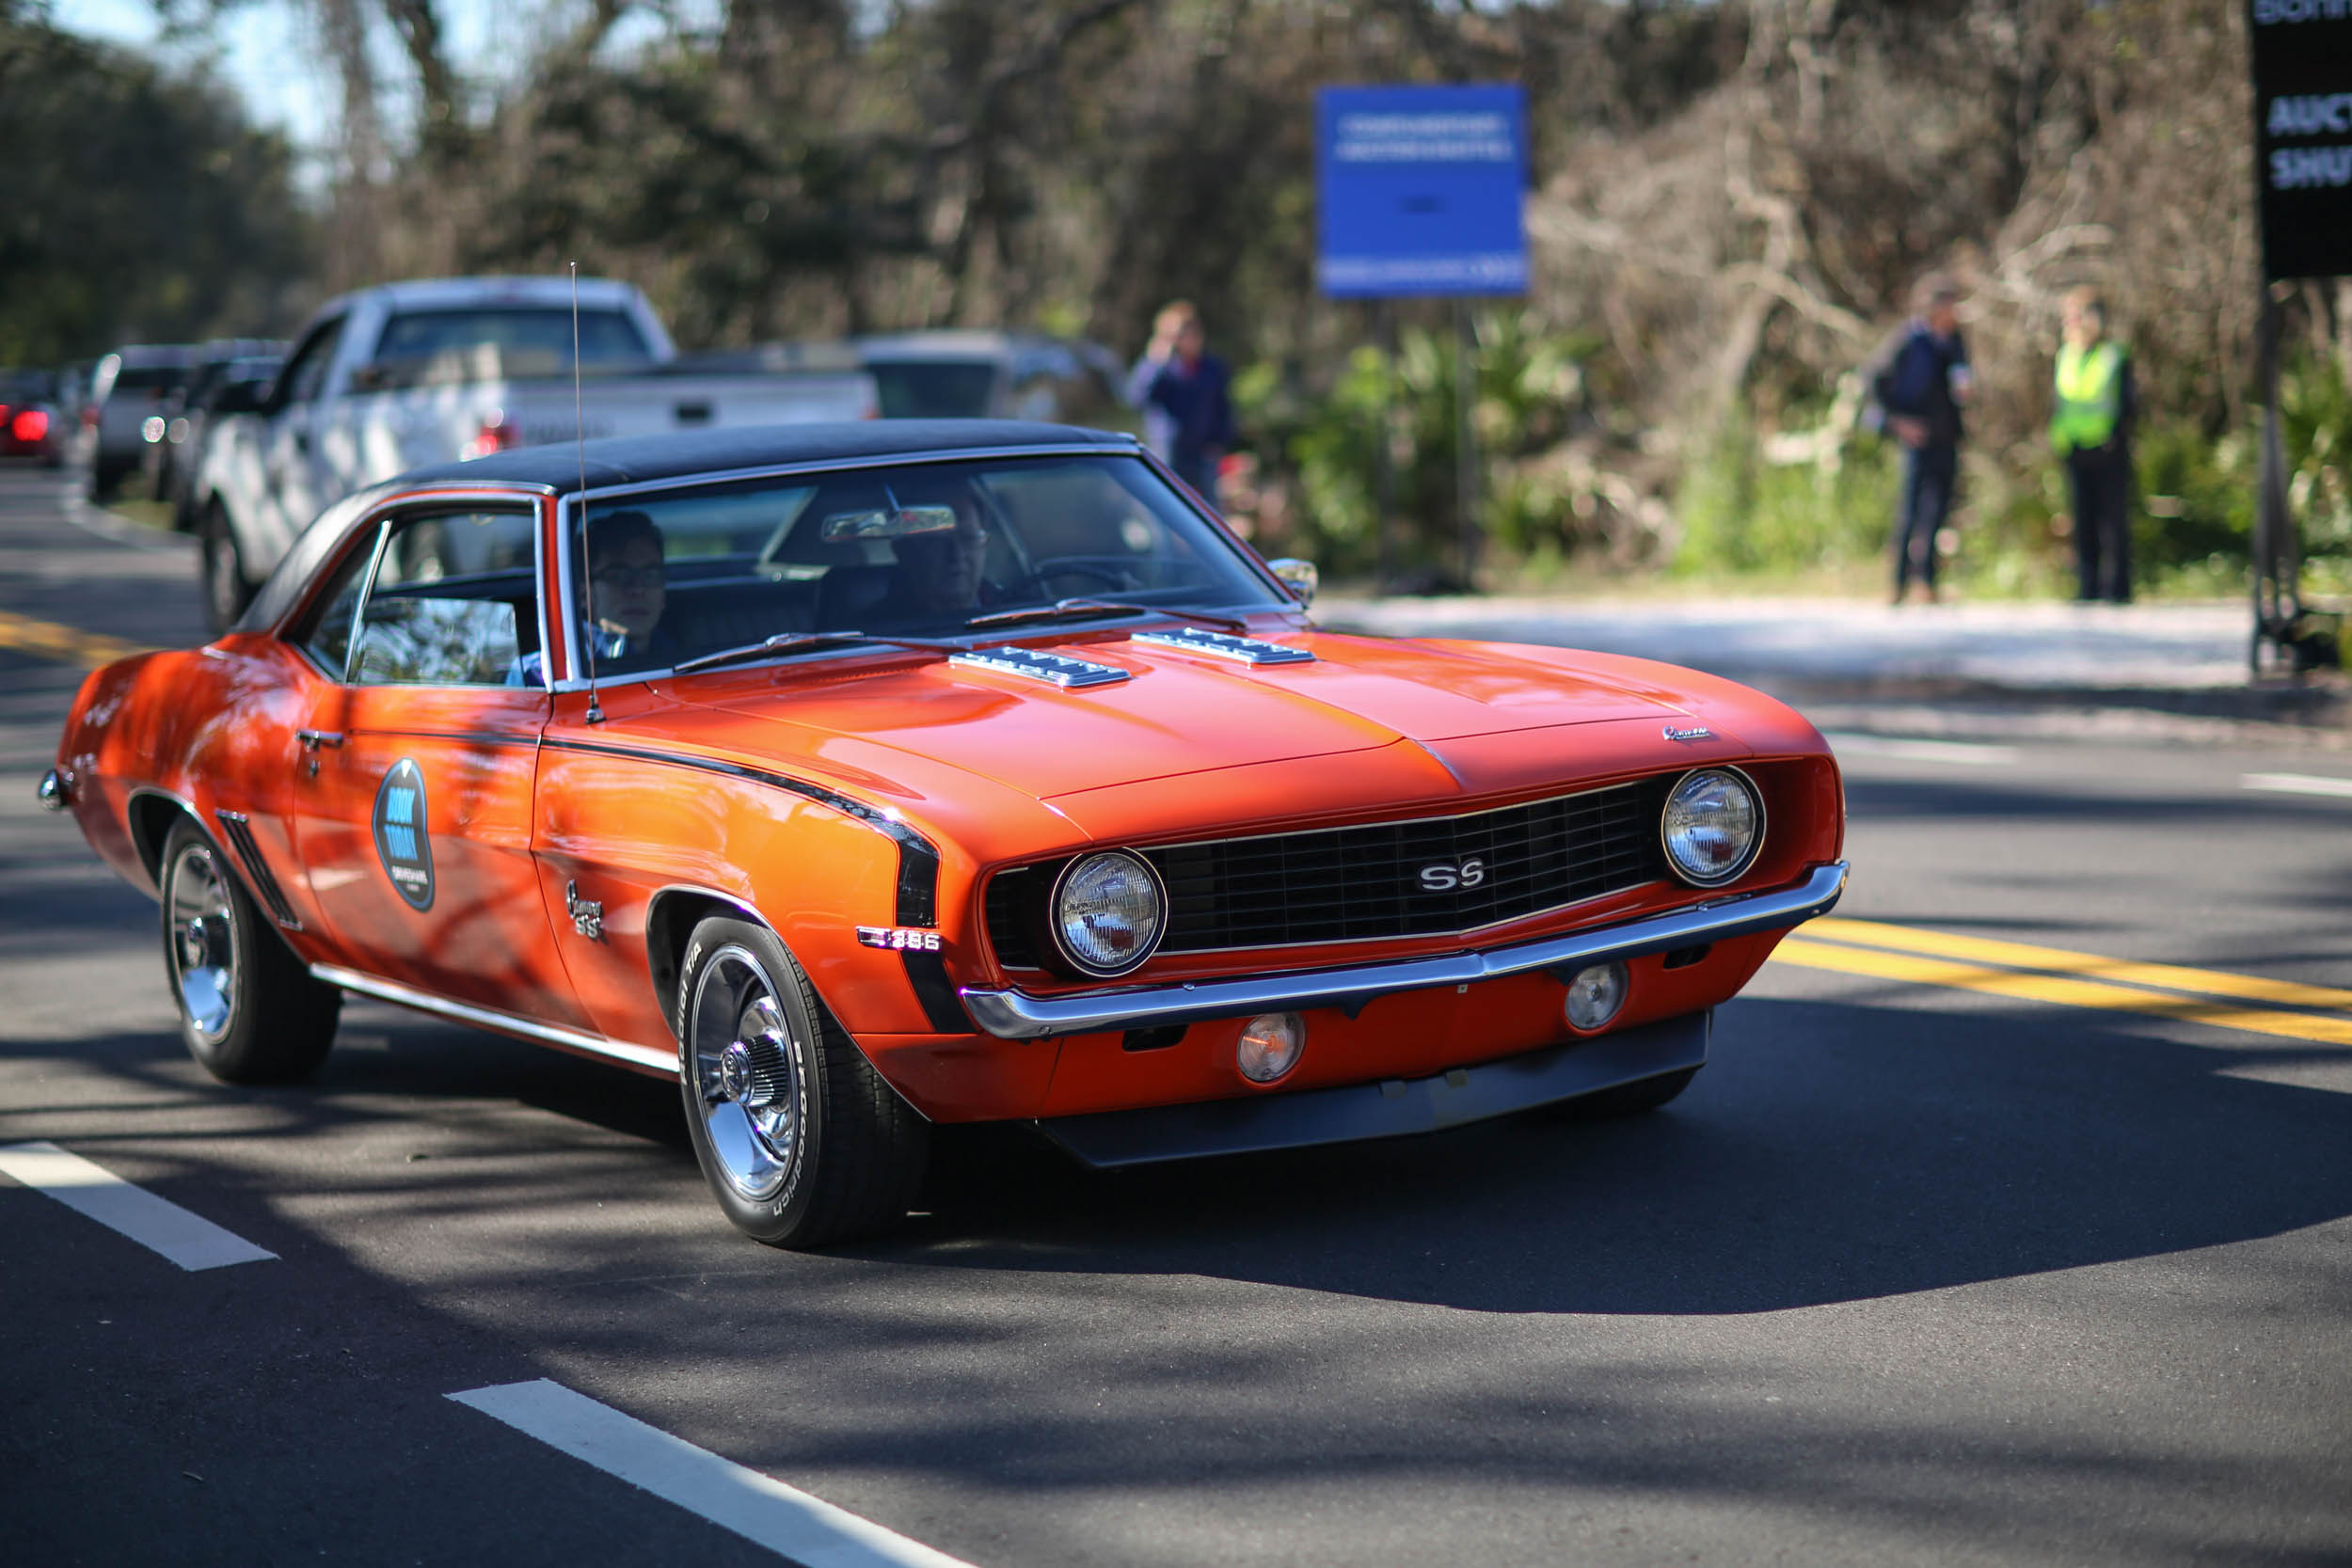 This 1969 Camaro SS 396 was booked solid at Hagerty's Ride & Drive stand.